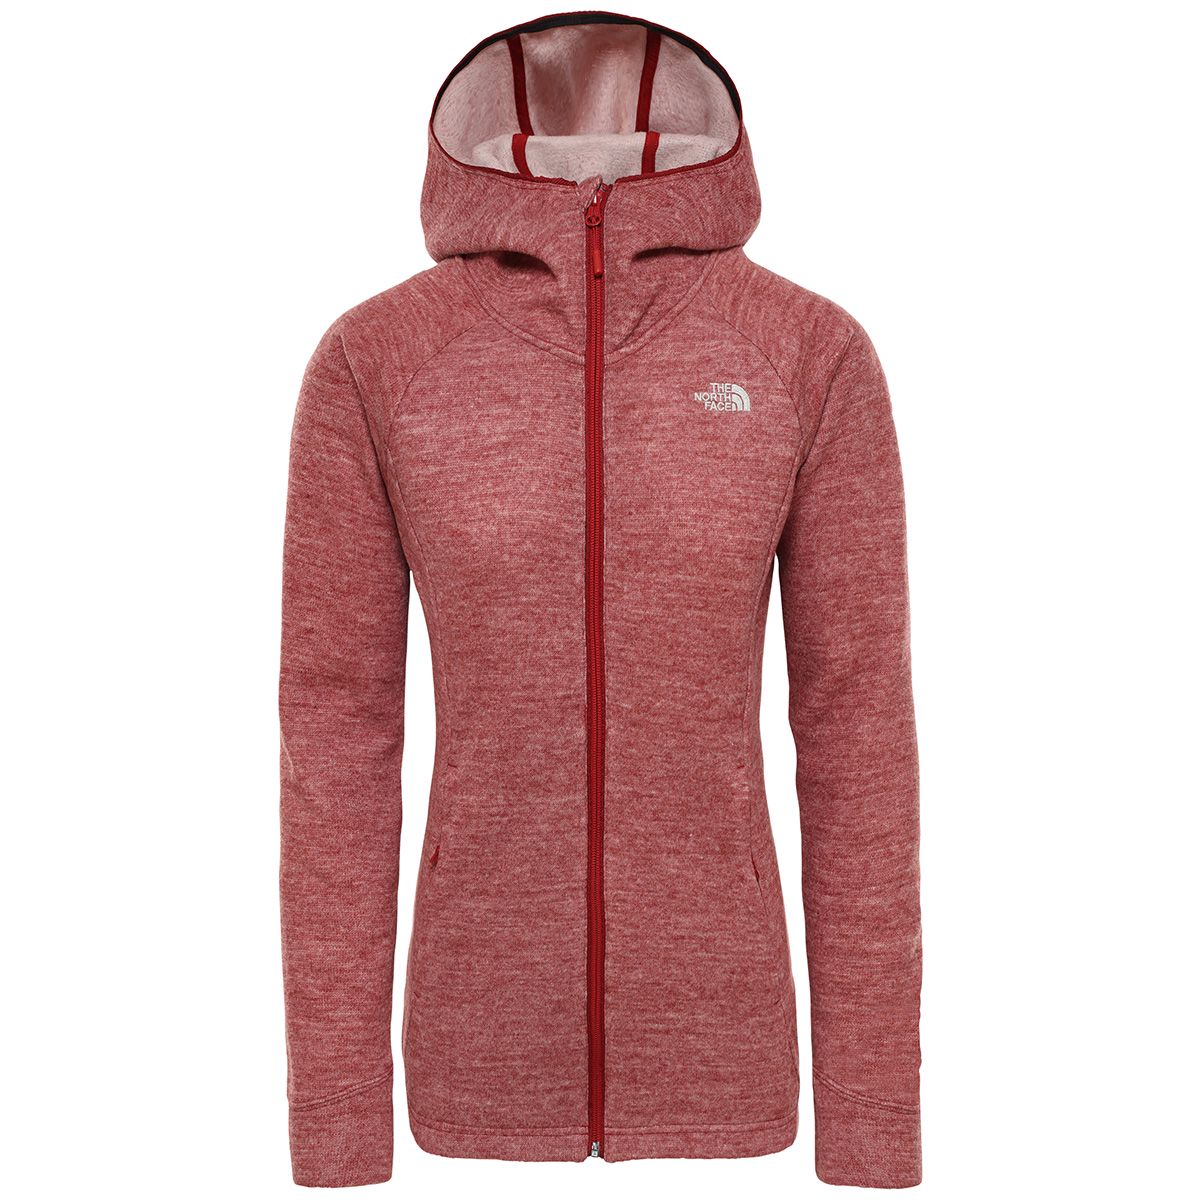 The North Face Damen Inlux Wool Pro Hoodie Jacke (Größe XS, Rot) | Freizeitjacken & Parkas > Damen